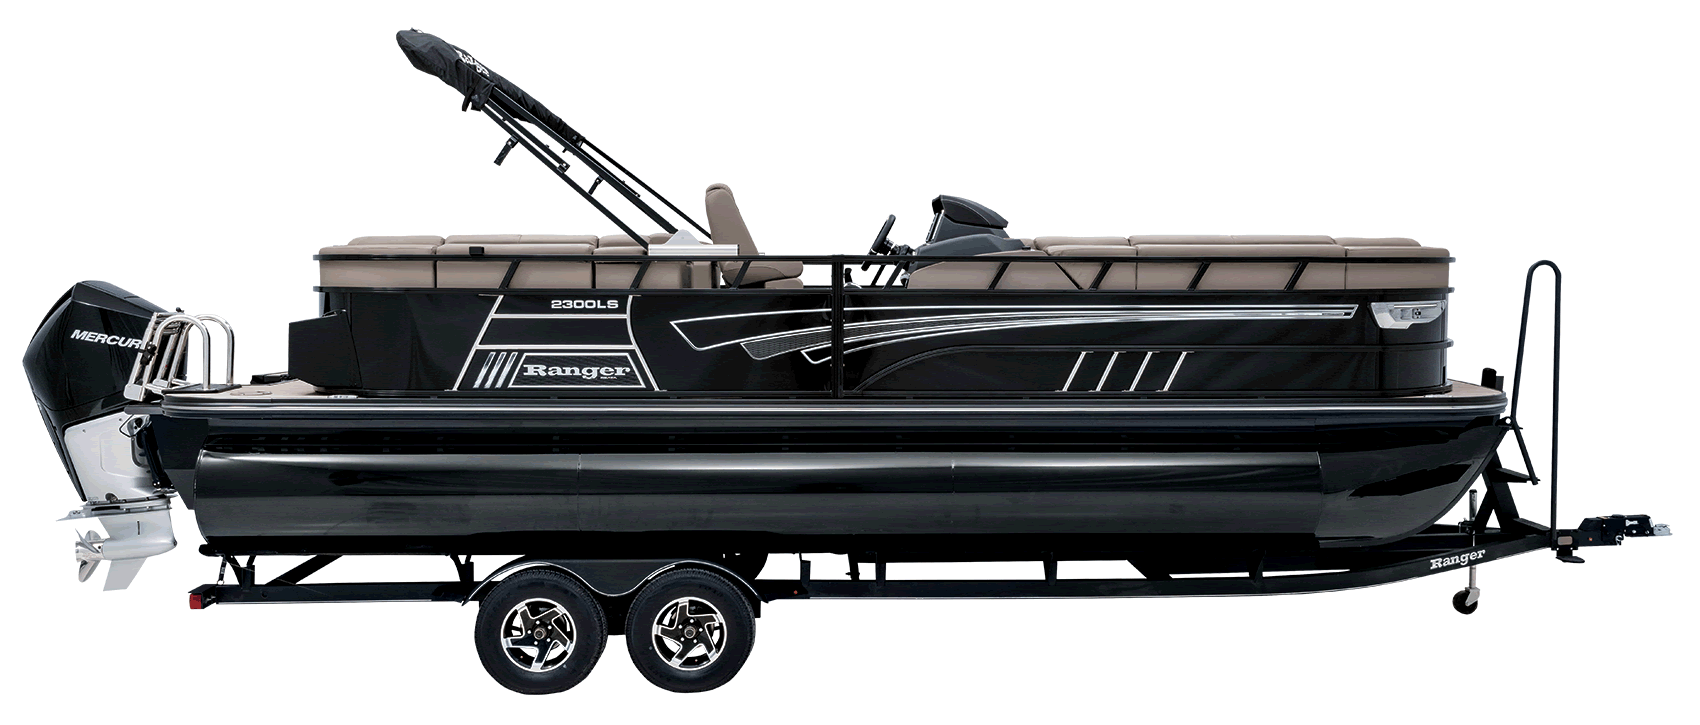 Ranger Reata 2300LS Luxury Pontoon